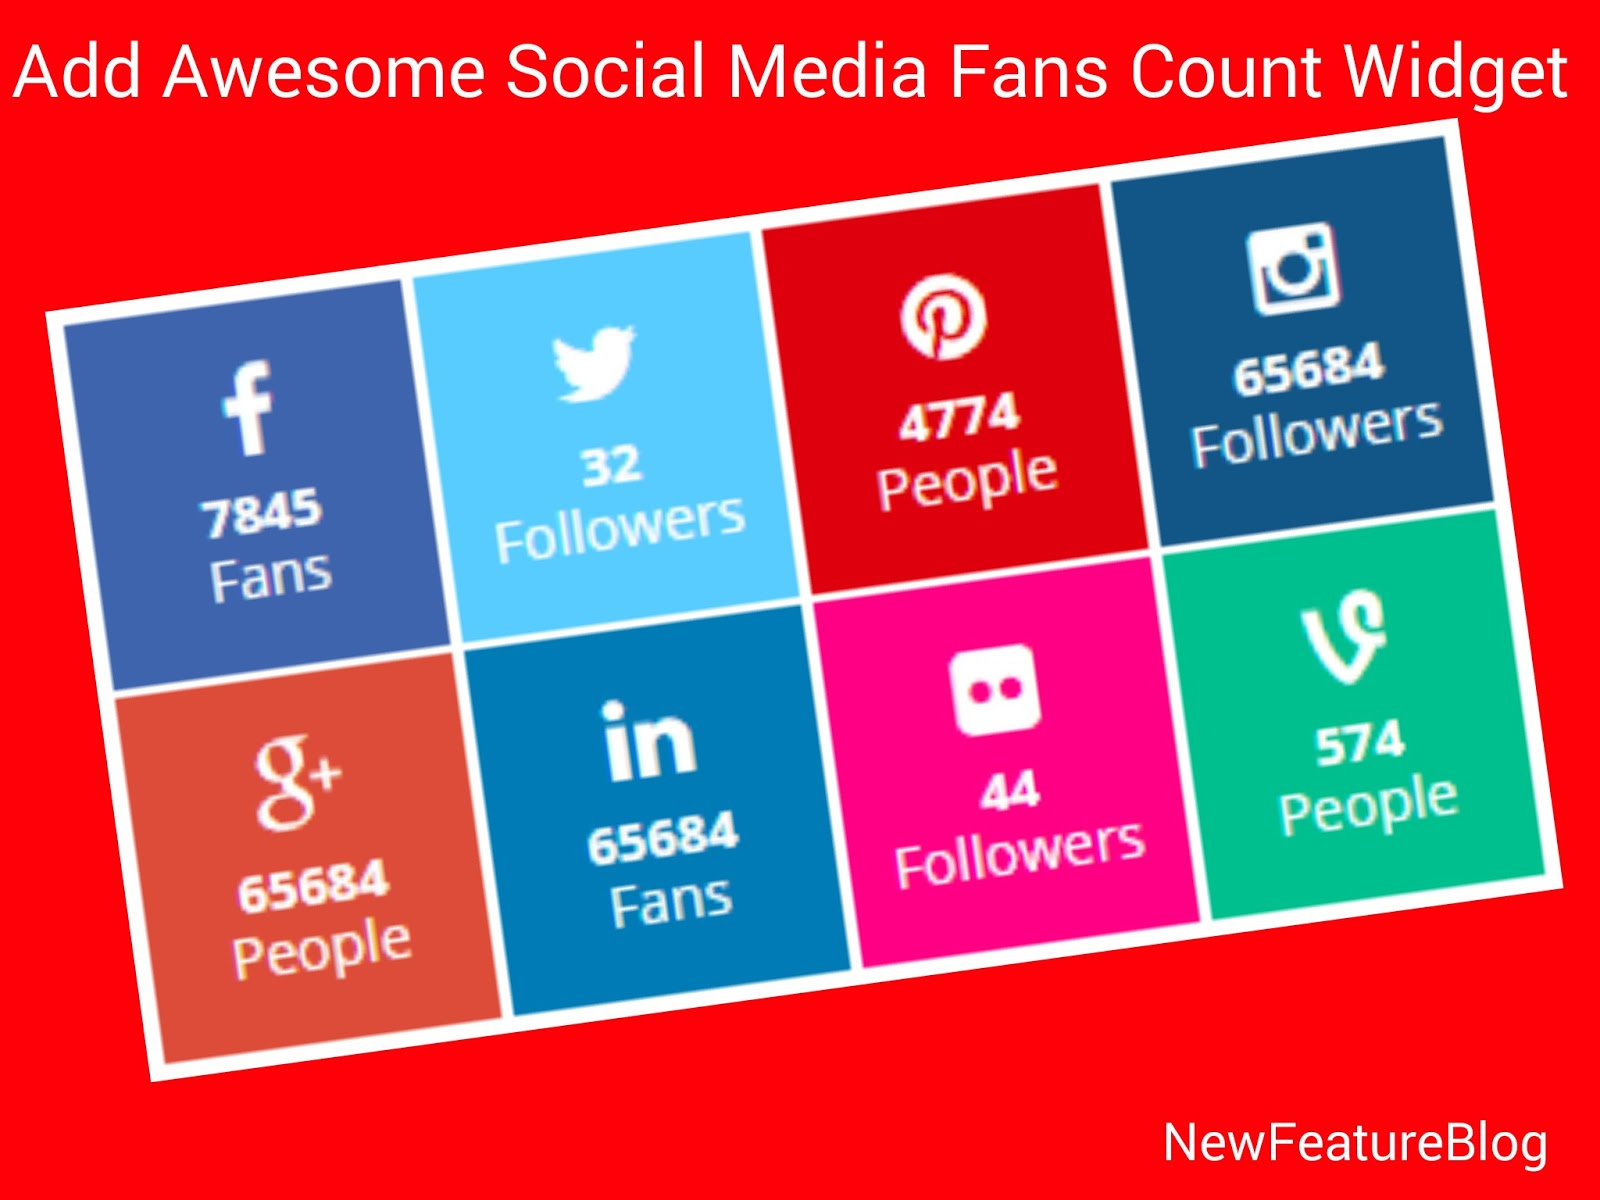 Add awesome social media counter widget in blog newfeatureblog